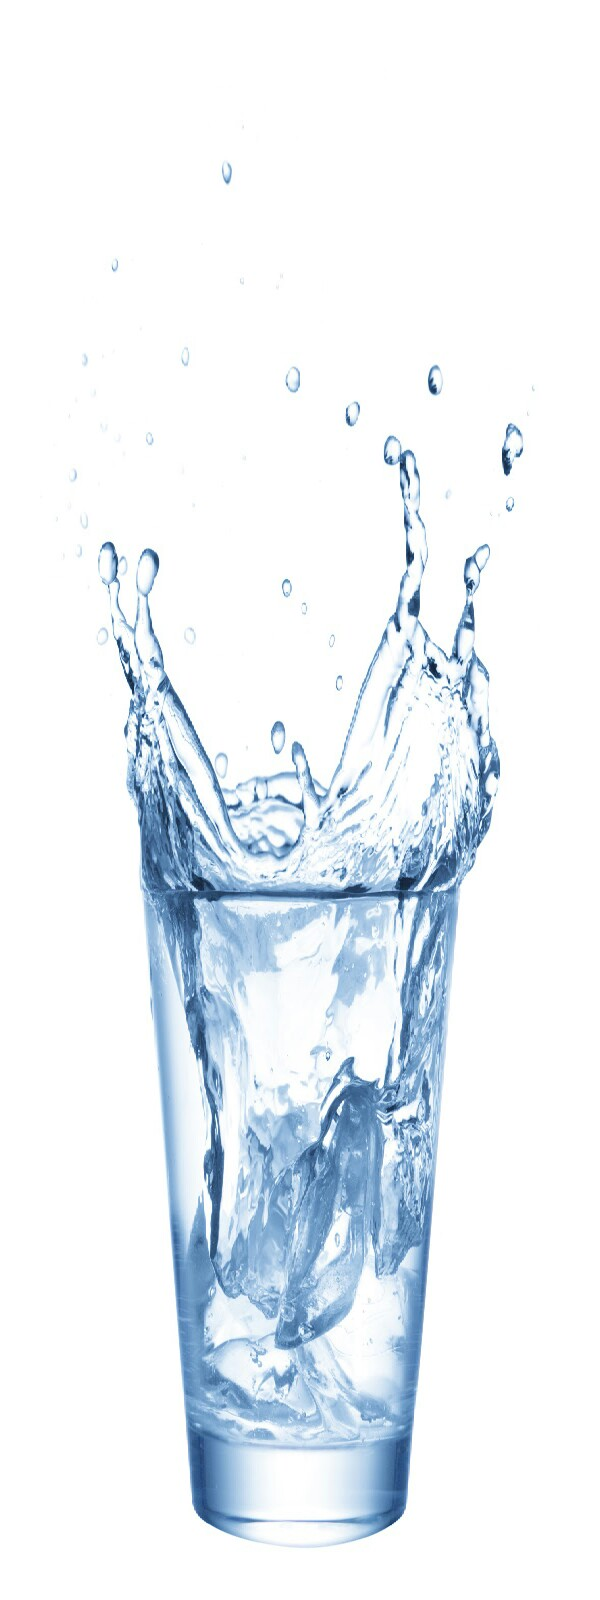 Drinking a glass of water before eating can make you feel more full, resulting in weight loss